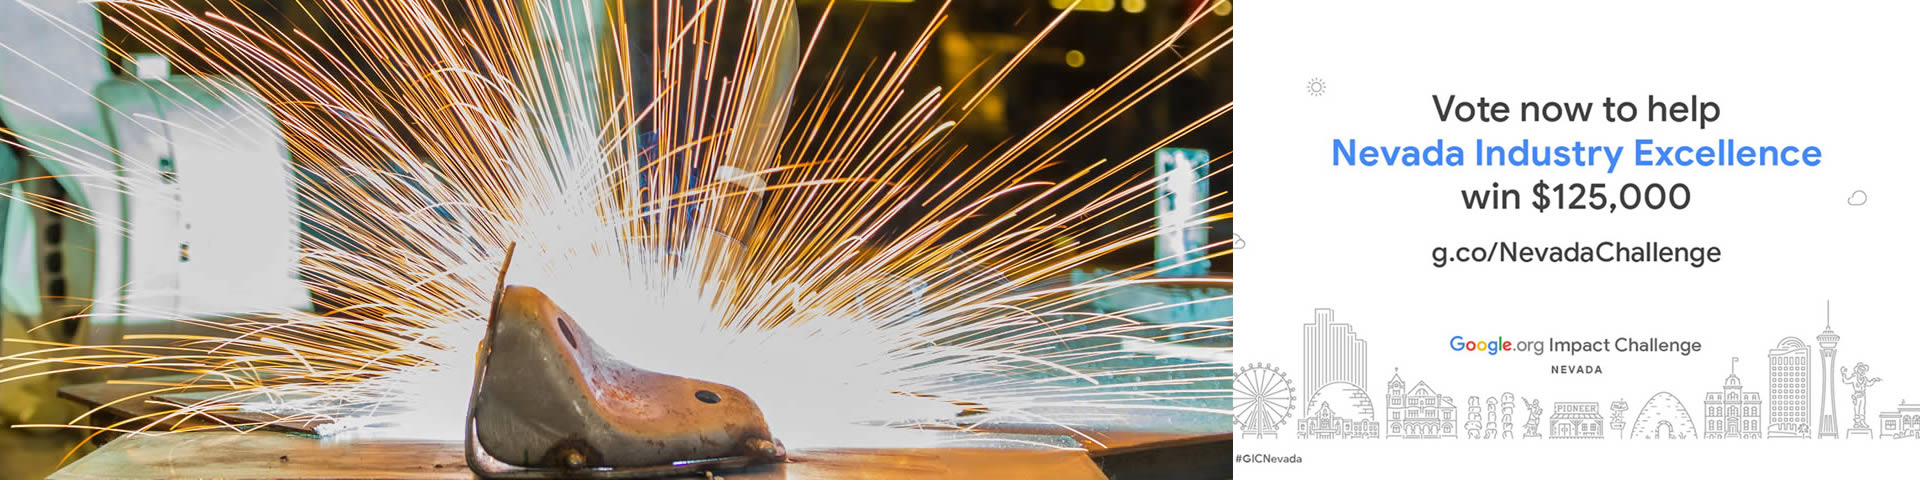 picture of a welder welding metal with sparks flying